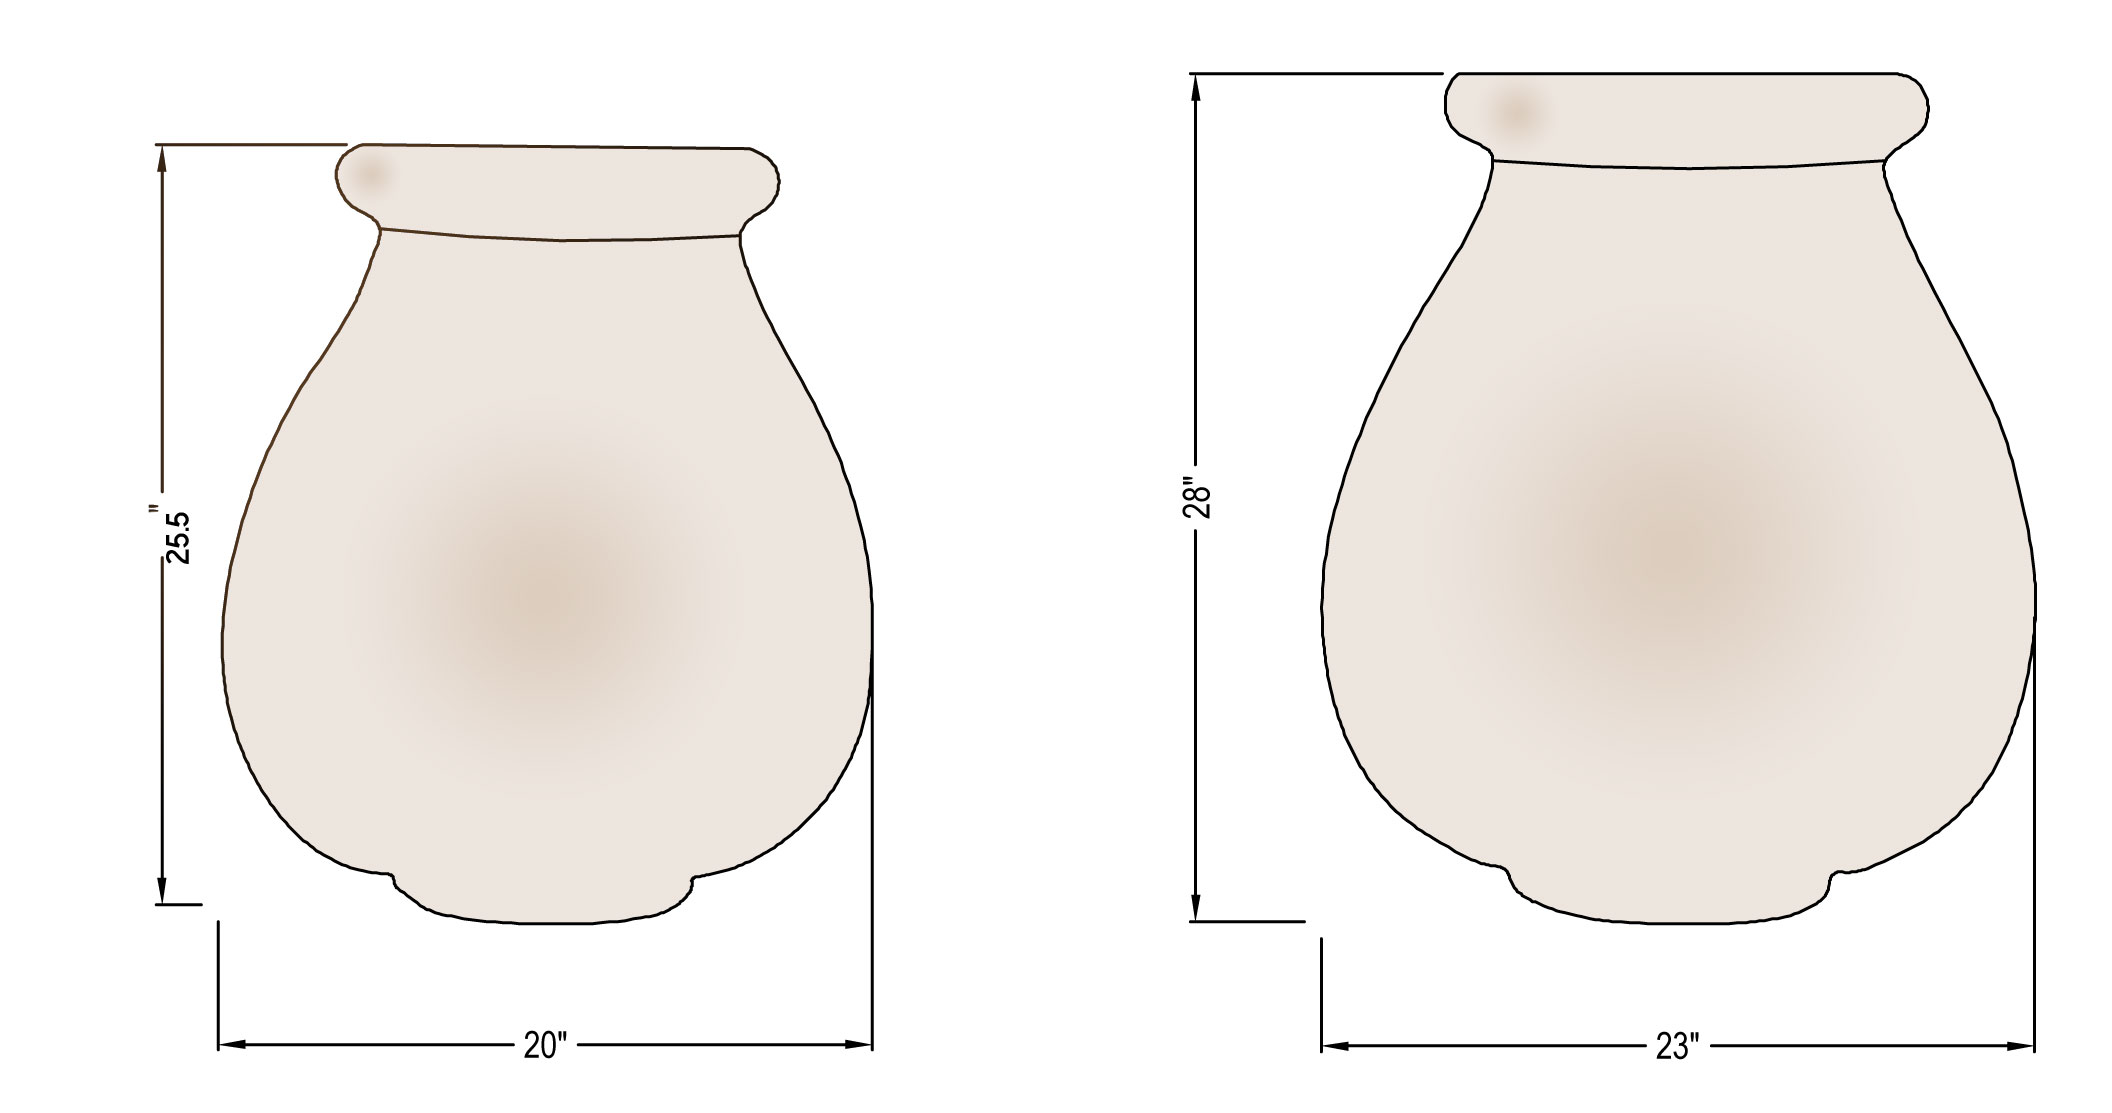 Oil Jar Dimensions